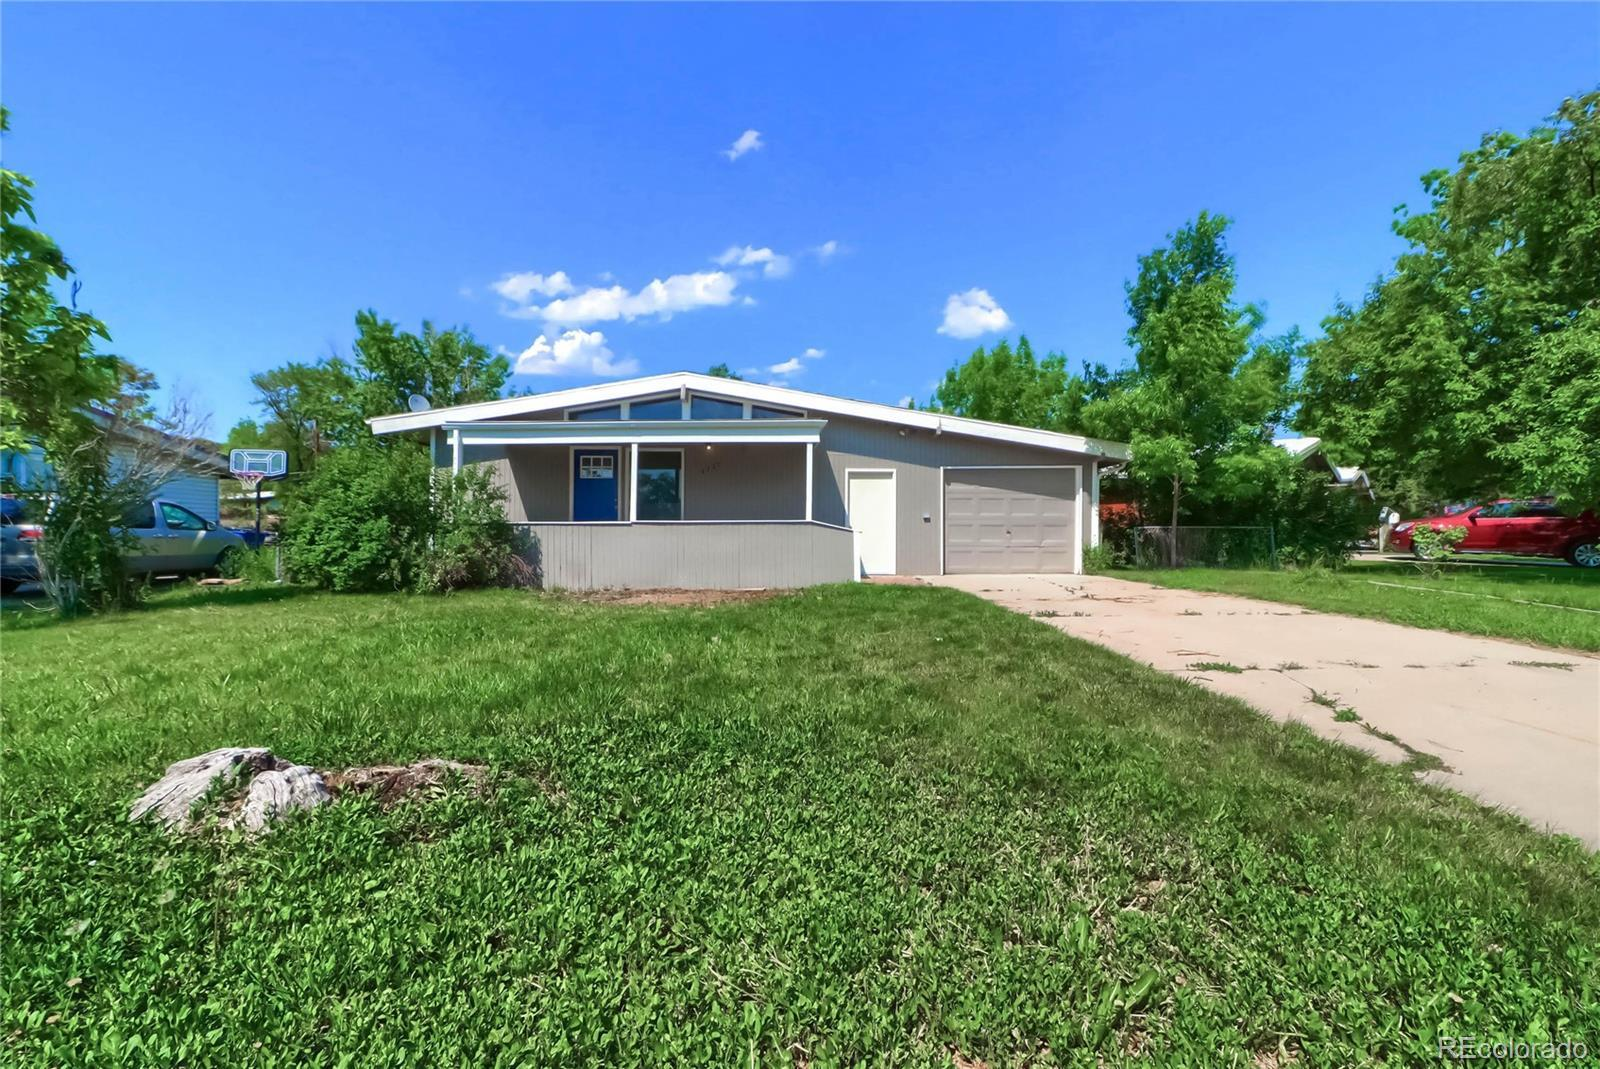 4325 W 78th Avenue, Westminster, CO 80030 - #: 5608409